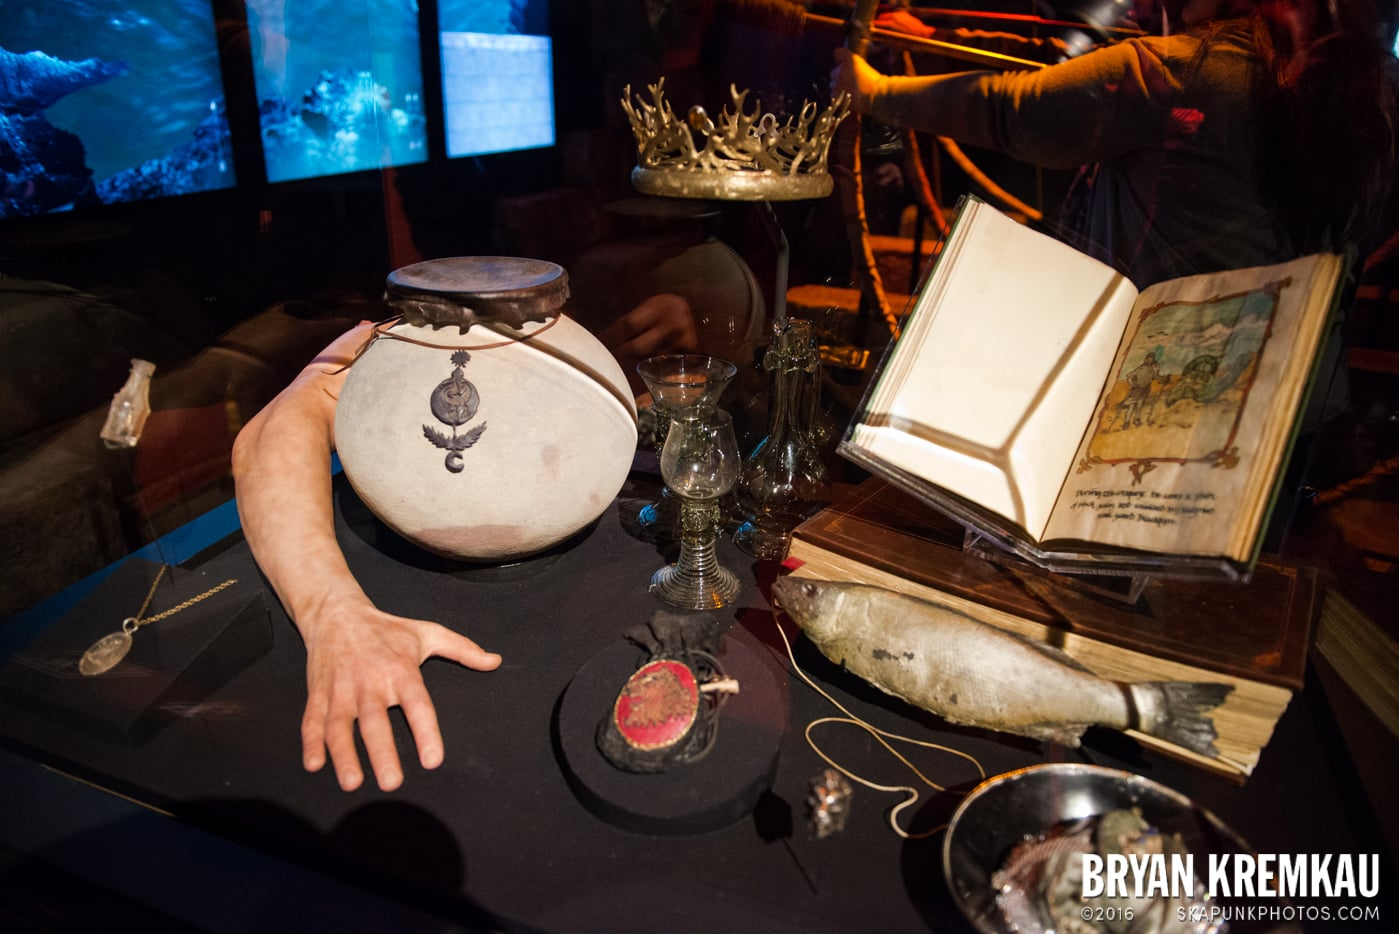 Game Of Thrones Exhibition @ New York, NY - 3.29.13 (33)